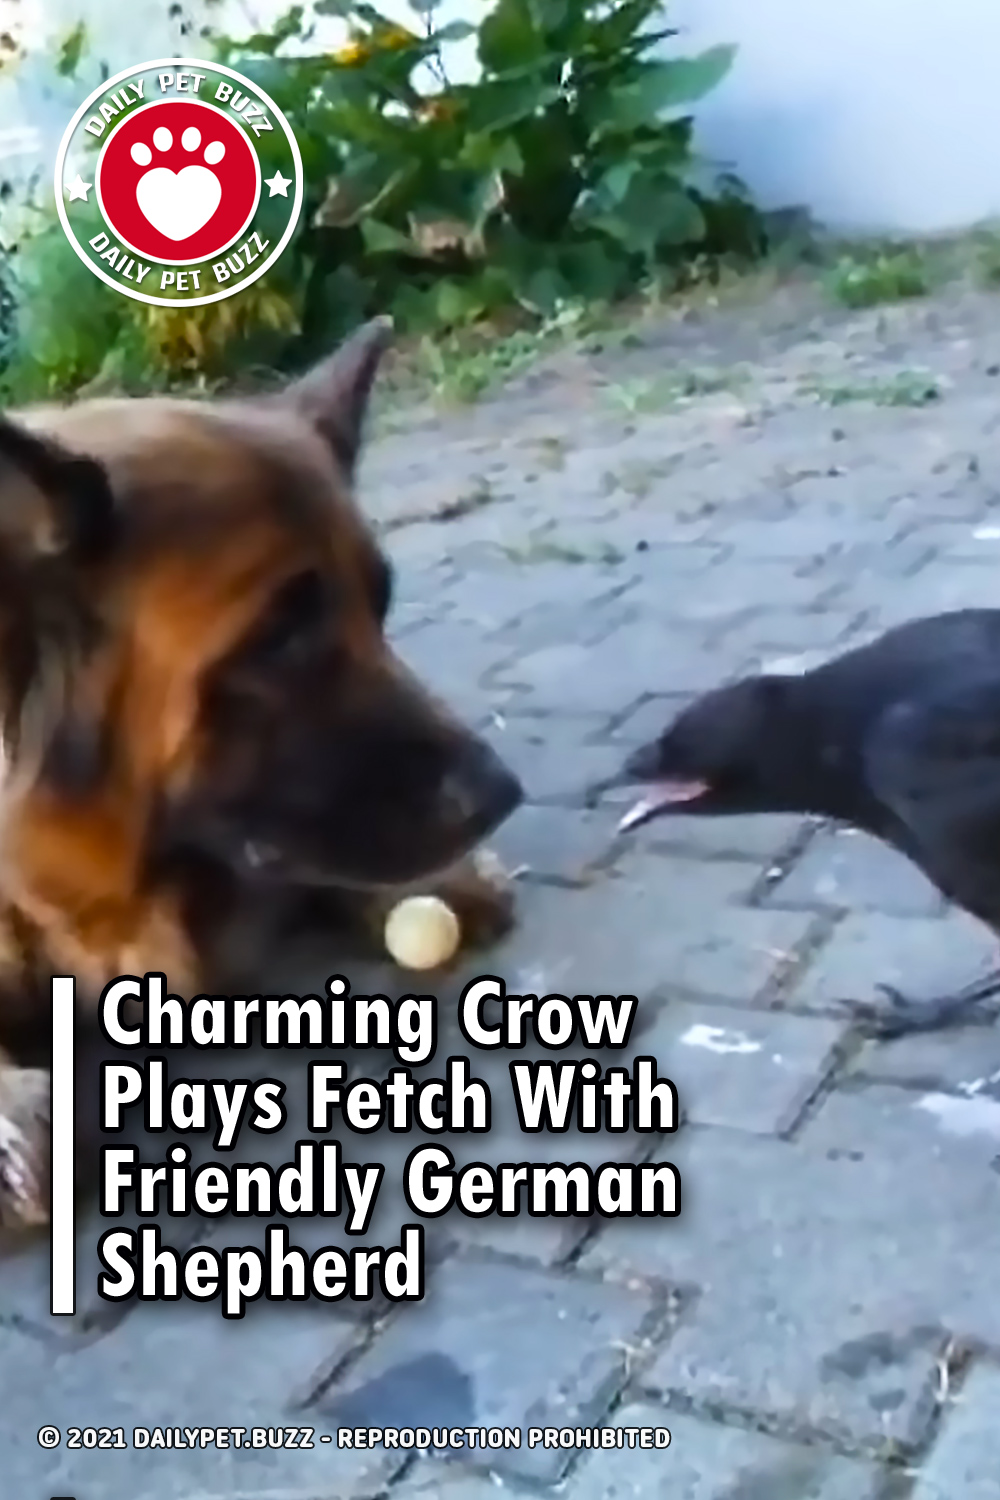 Charming Crow Plays Fetch With Friendly German Shepherd